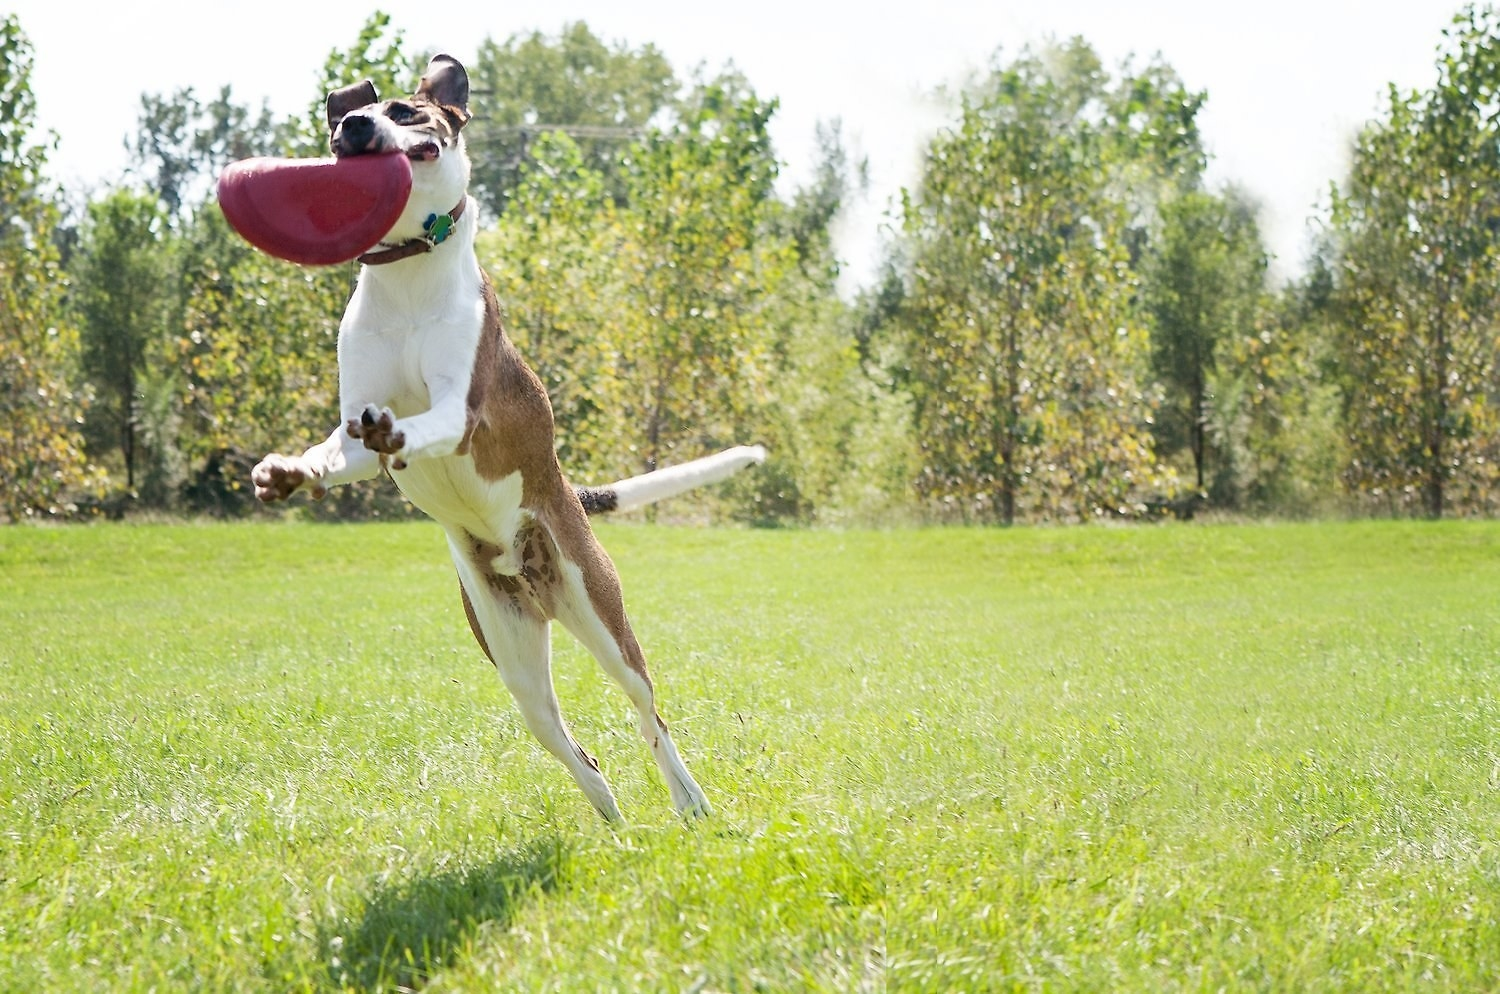 A white and brown dog jumping in the air to catch the flying disc. It's bending in its mouth so you can tell its flexible